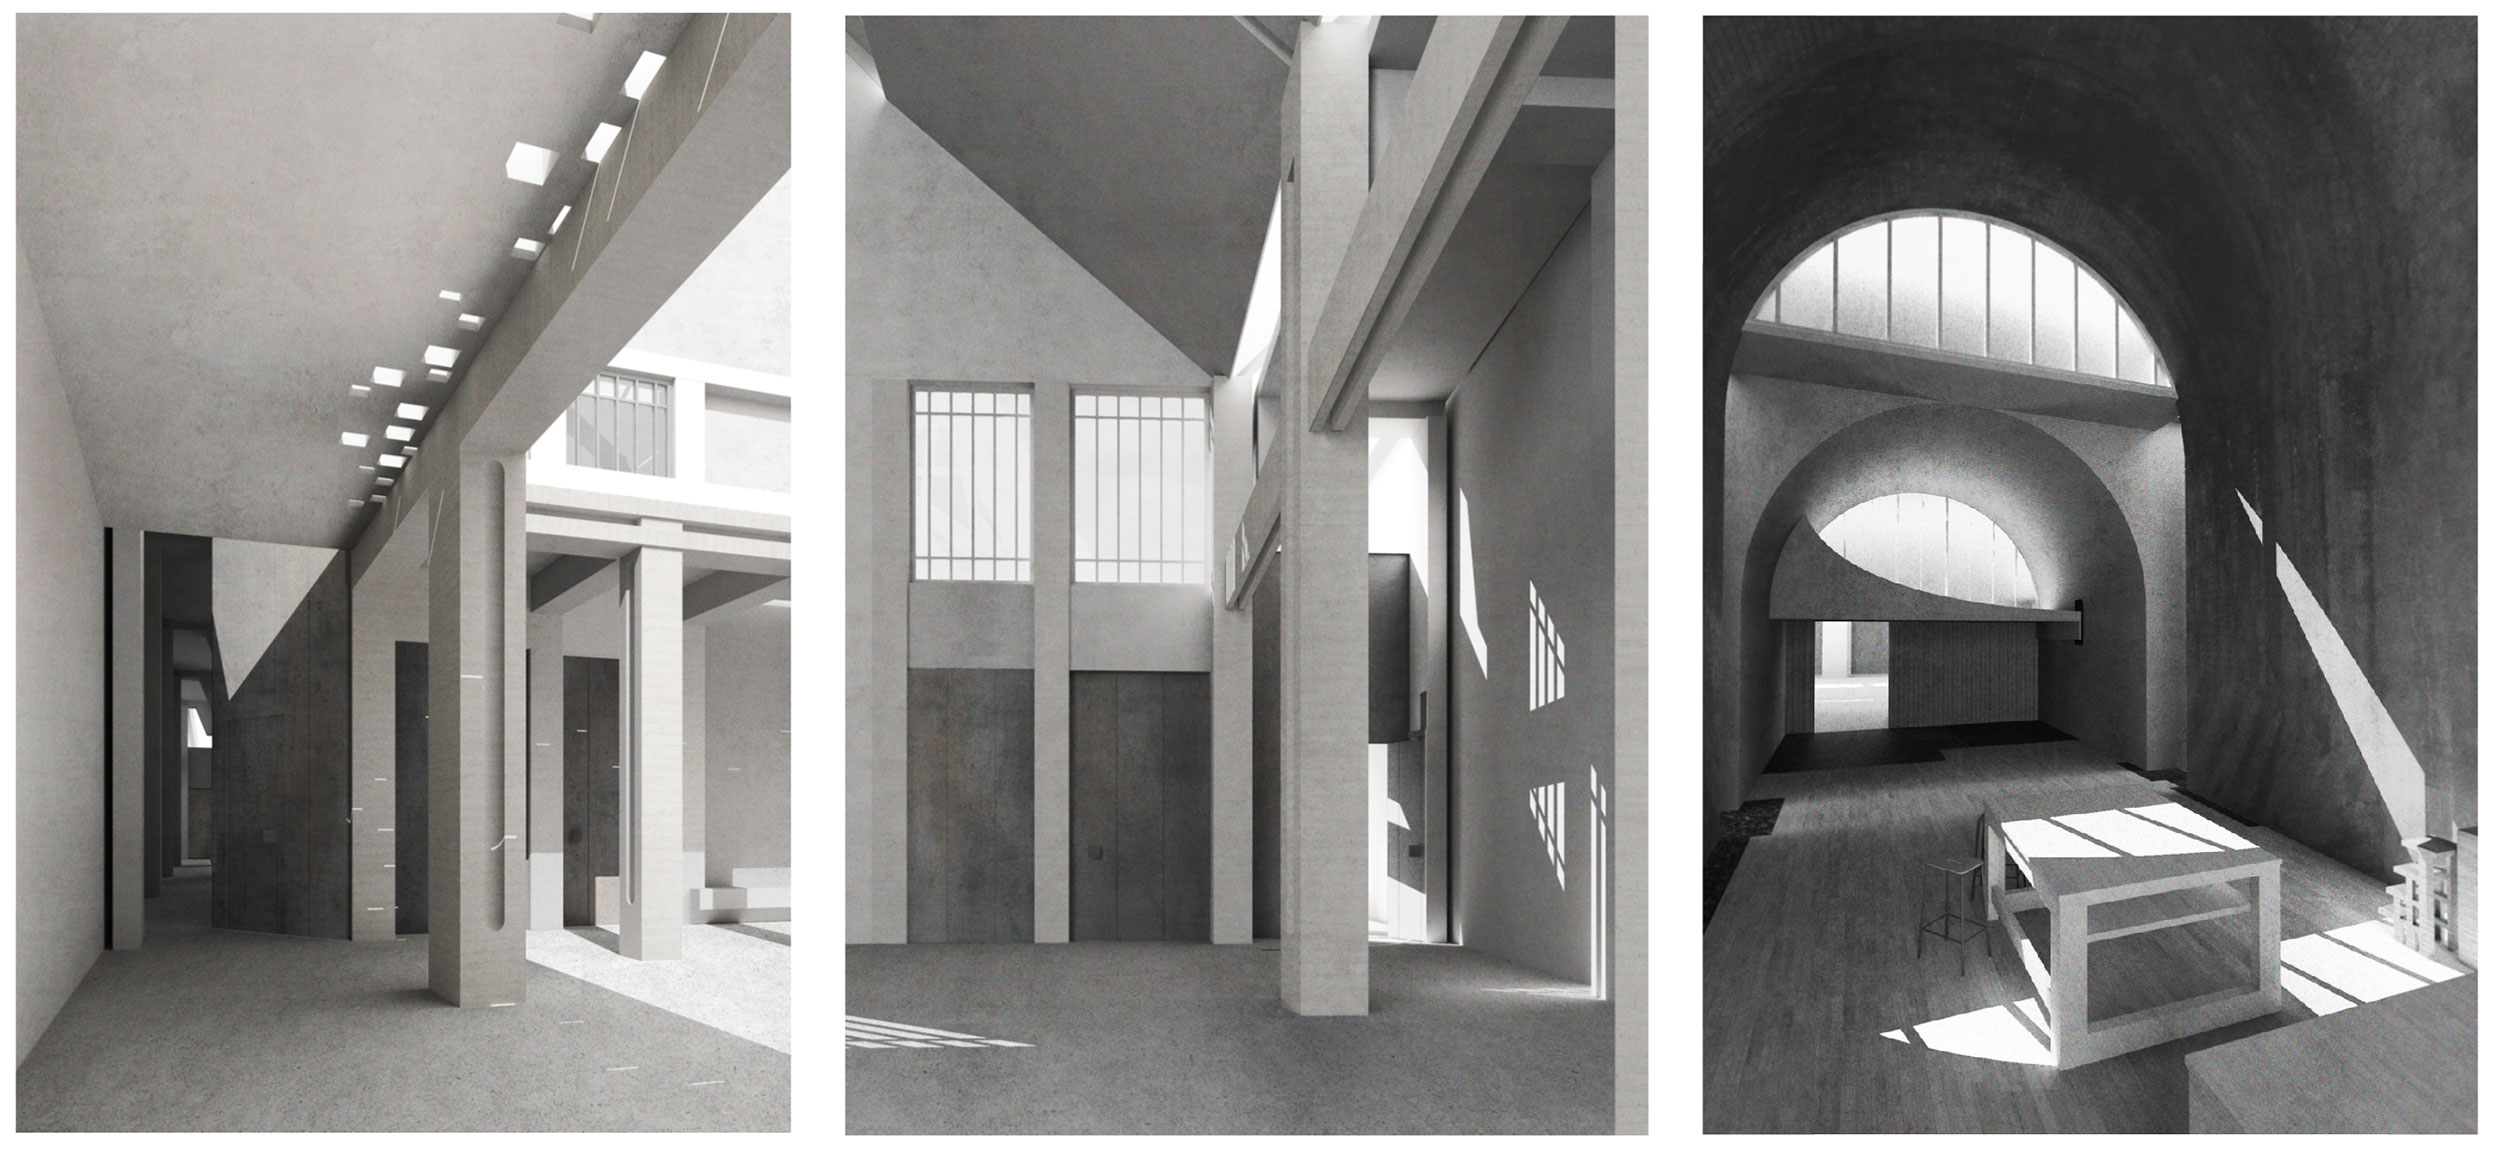 Different arch dimensions create spaces with different qualities of light. Right: perforated screens allow the space to be reconfigured in different ways.